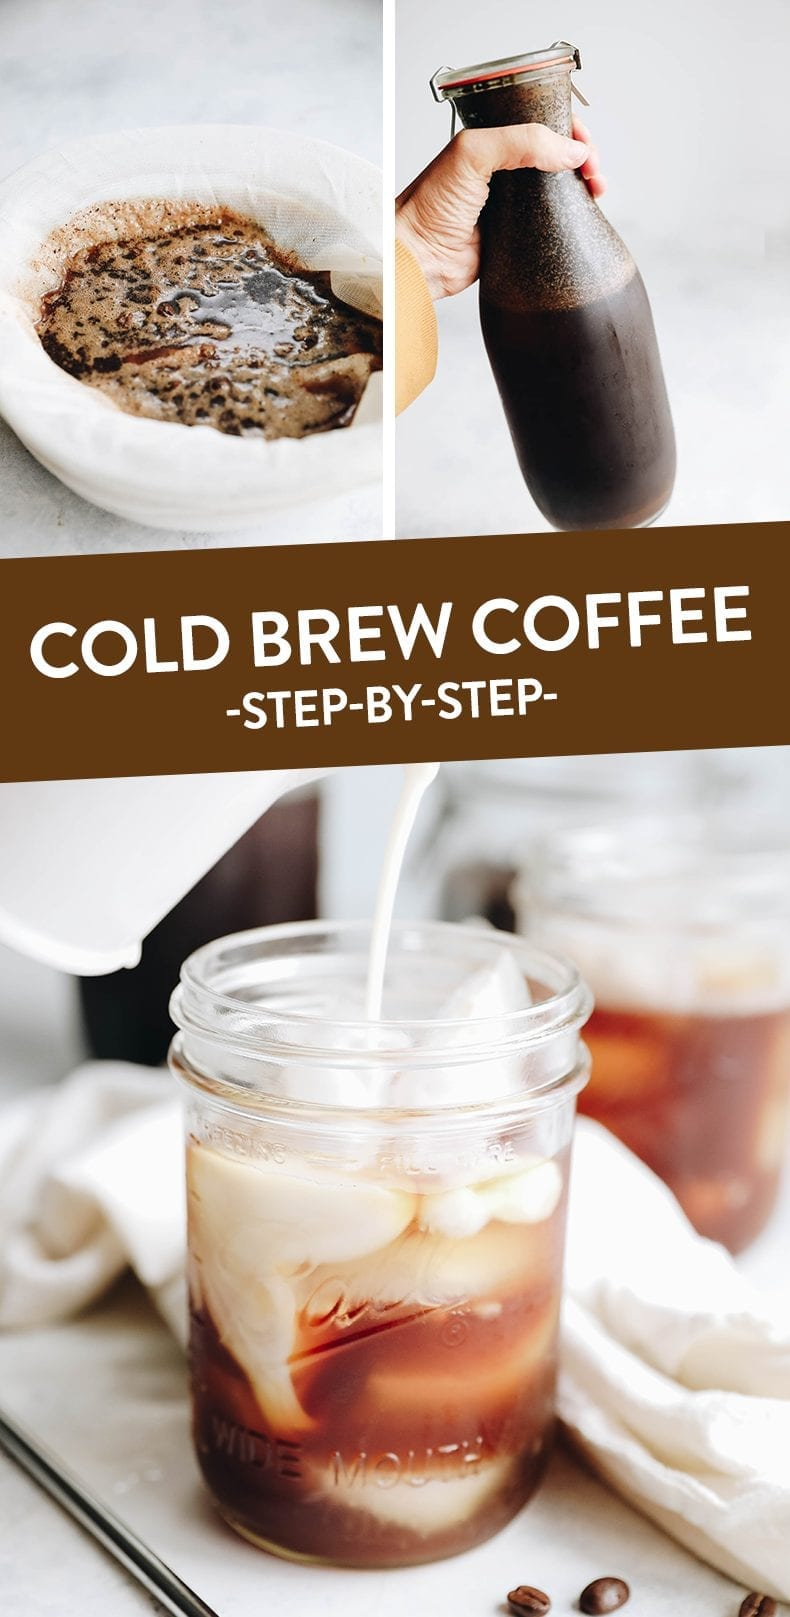 Start cold-brewing your own coffee for the best iced coffee ever! This easy step-by-step recipe tutorial makes cold-brew iced coffee in 12 hours! #coldbrew #coffee